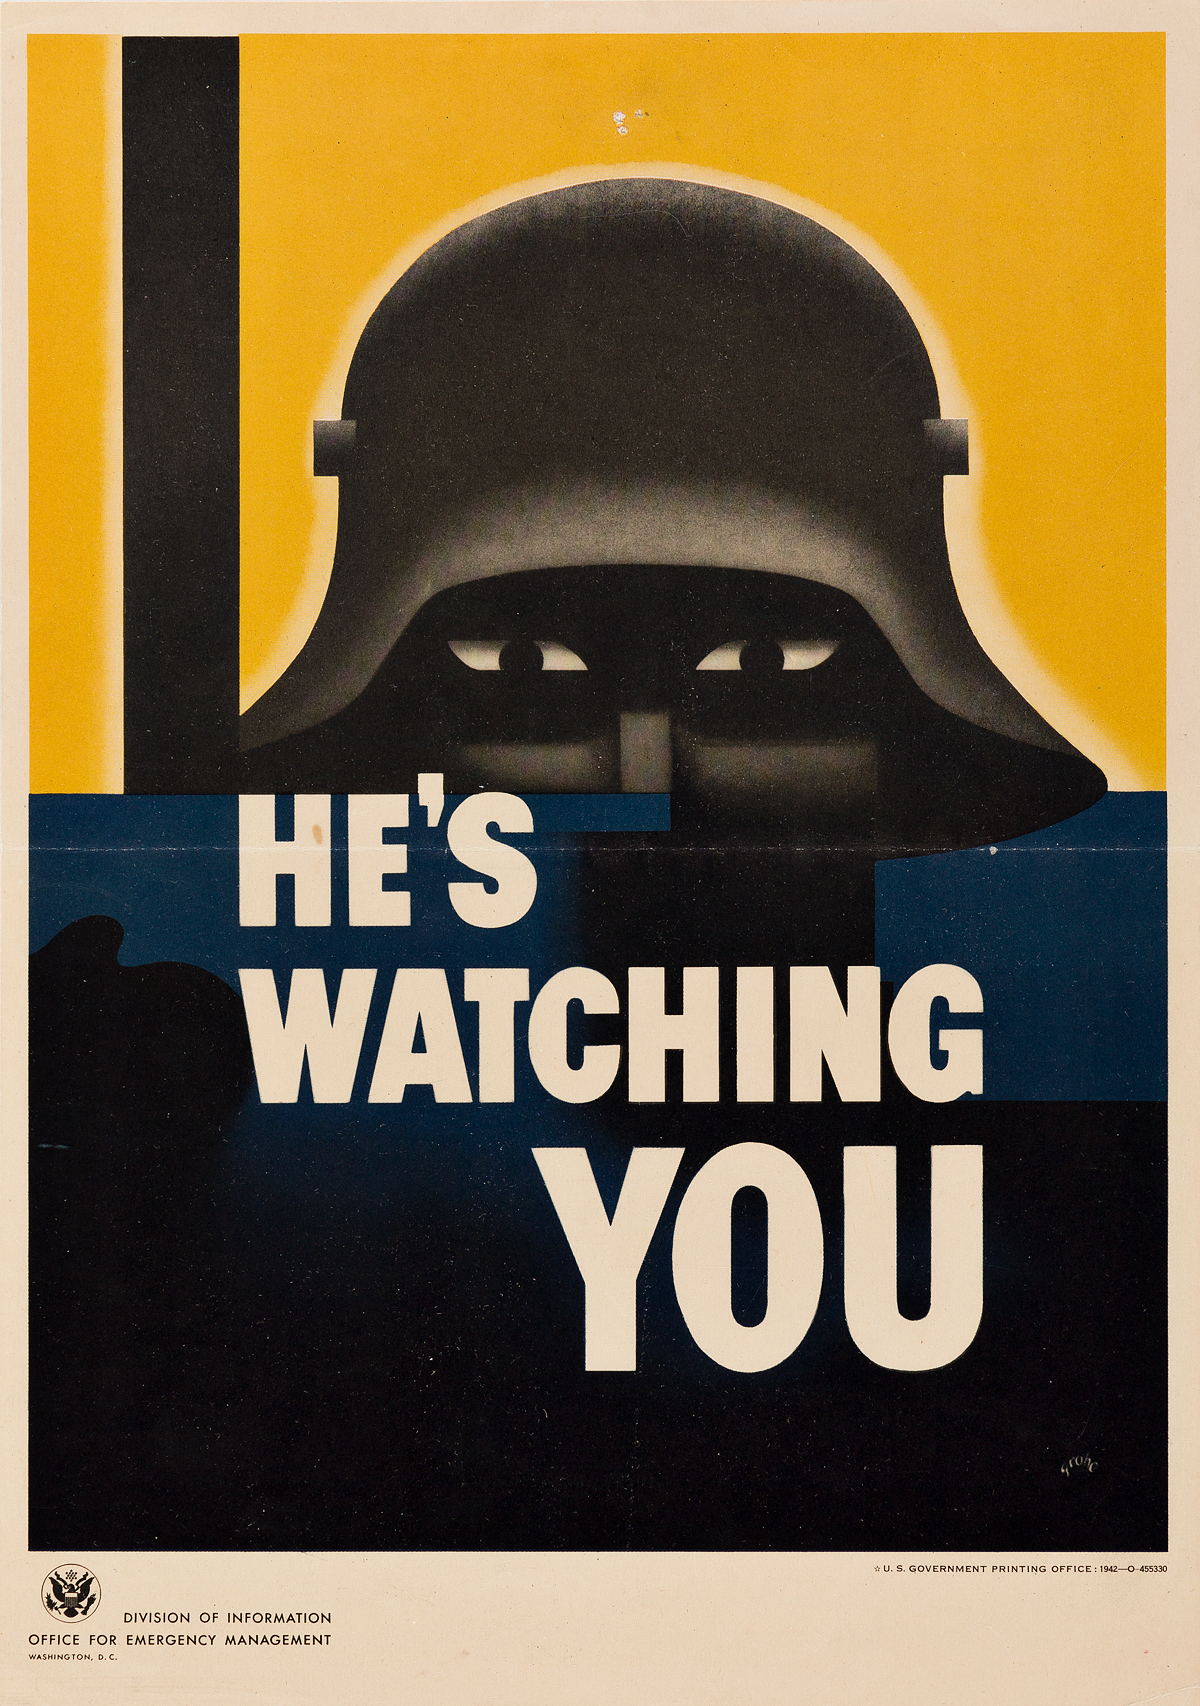 VARIOUS-ARTISTS-[MORE-PRODUCTION--HES-WATCHING-YOU]-Group-of-4-small-format-posters-1942-Sizes-vary-each-approximately-10x7-inch